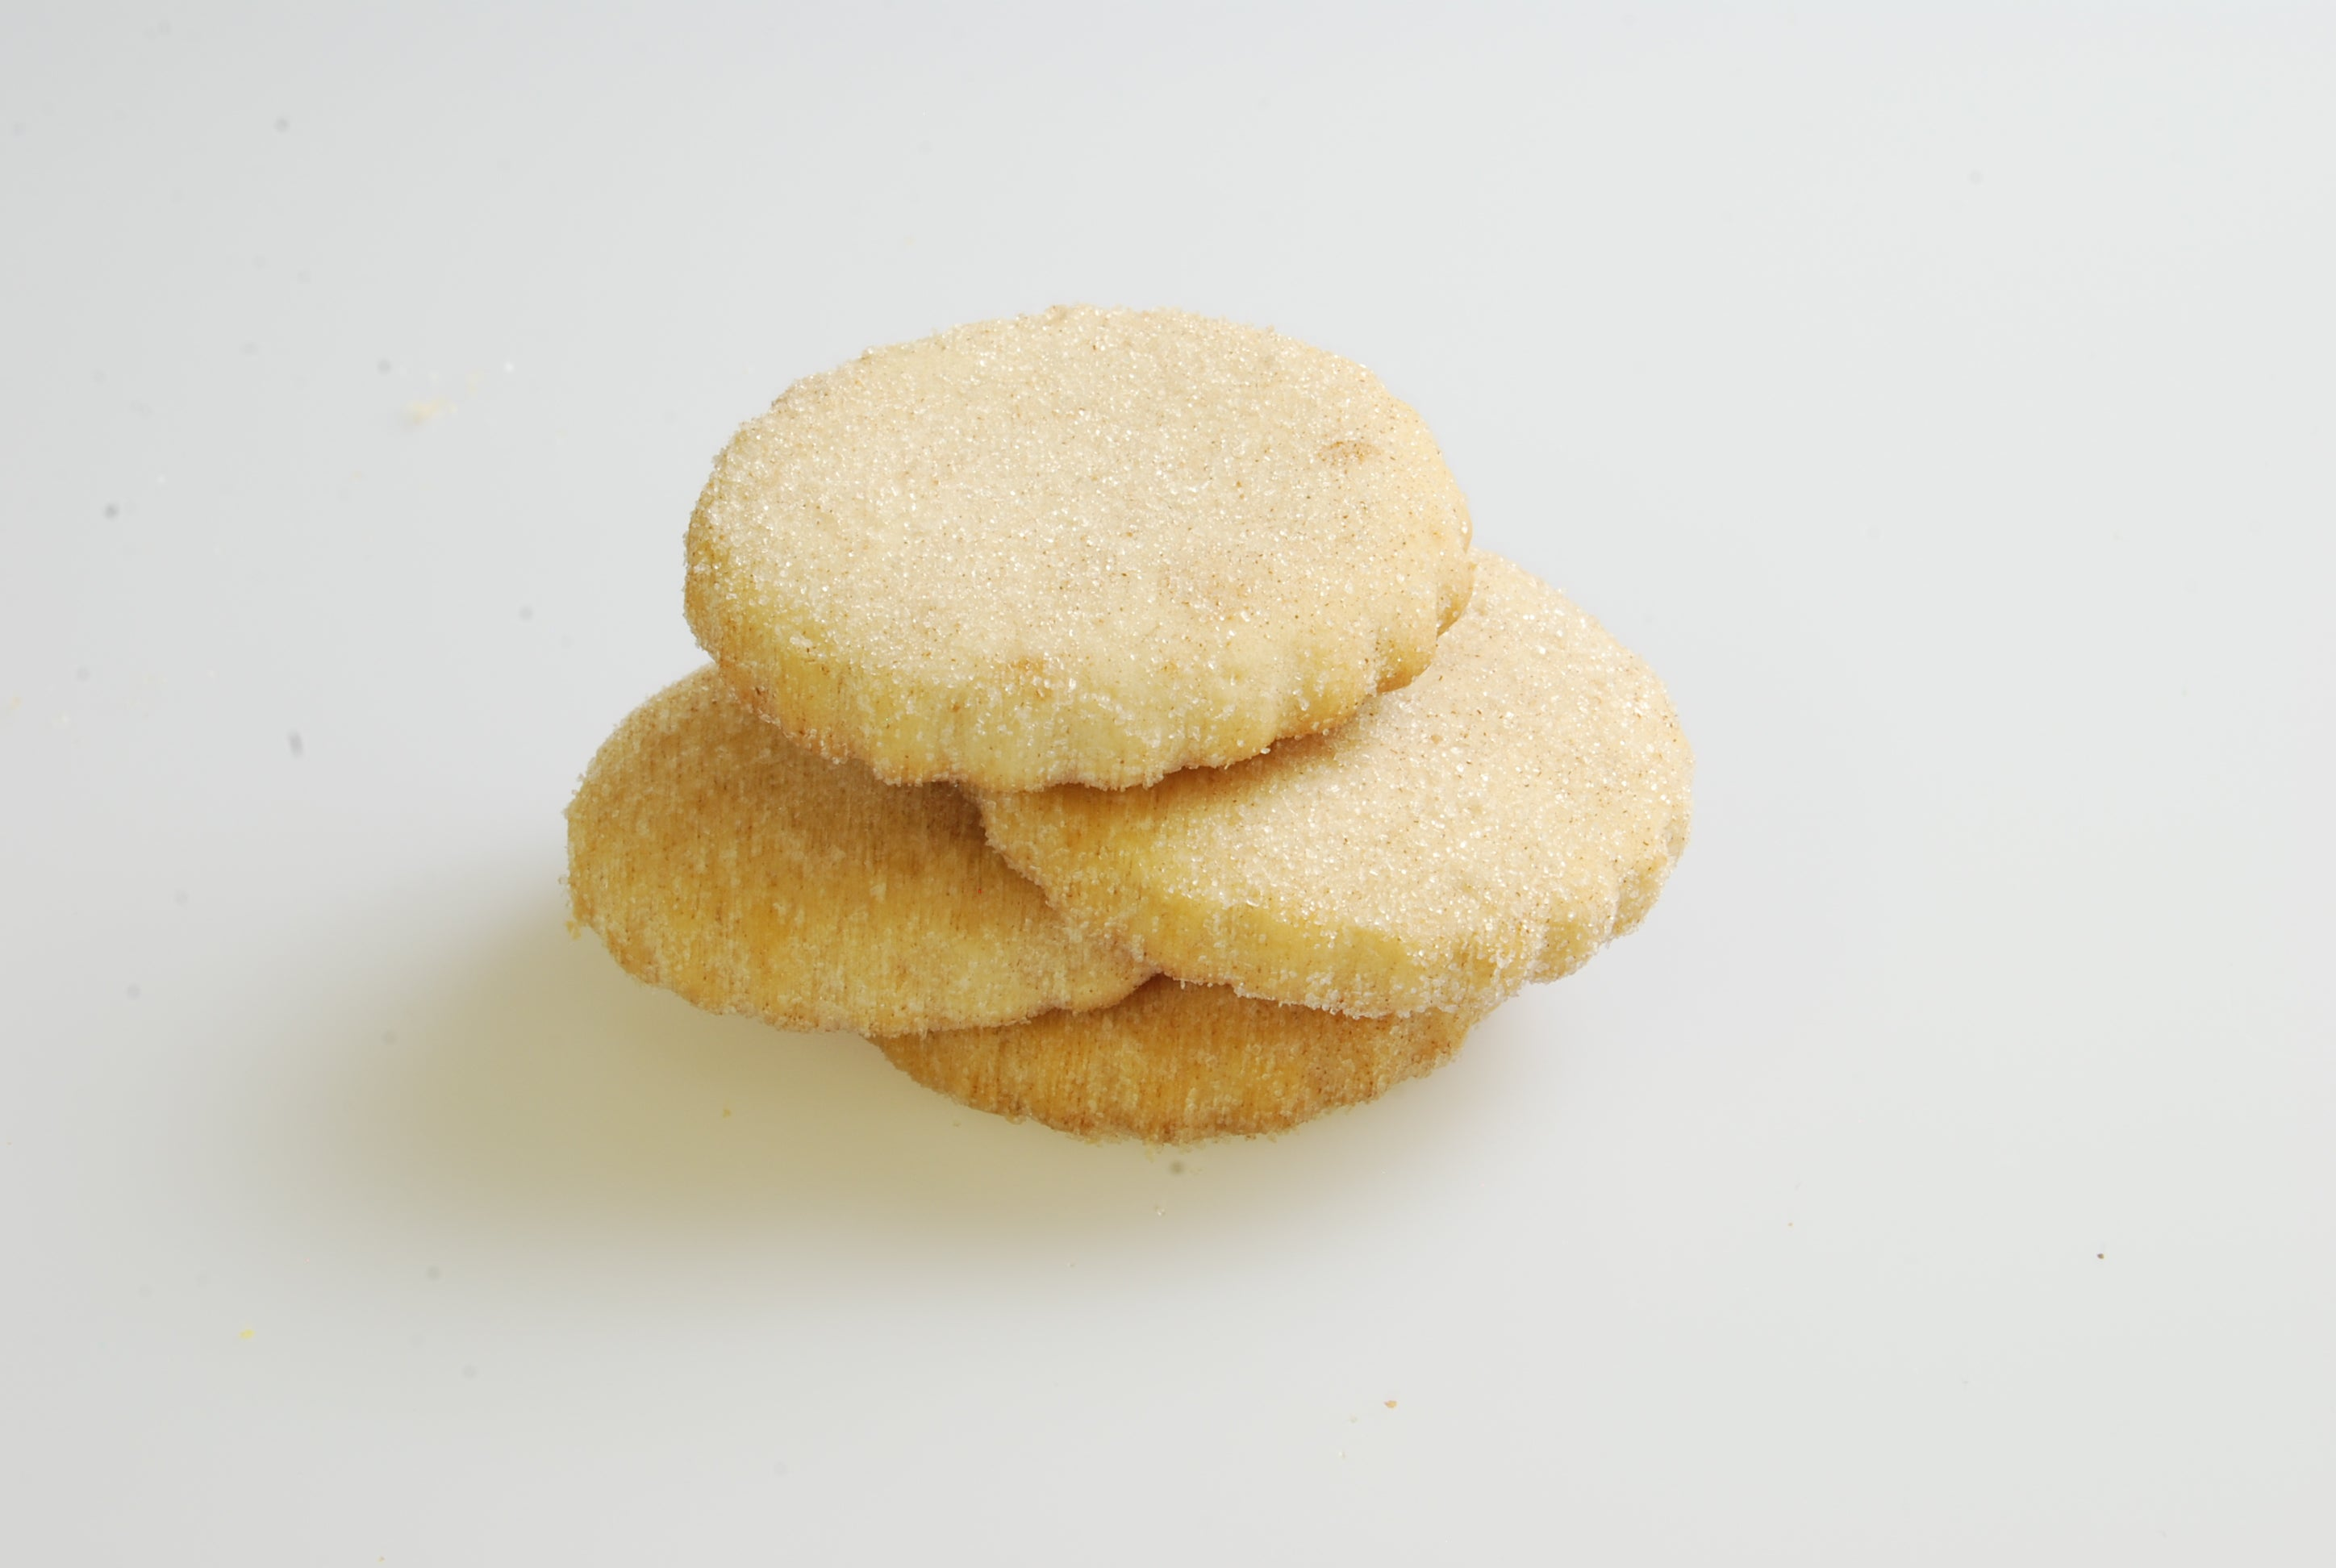 Cinnamon Sugar (Snickerdoodle)